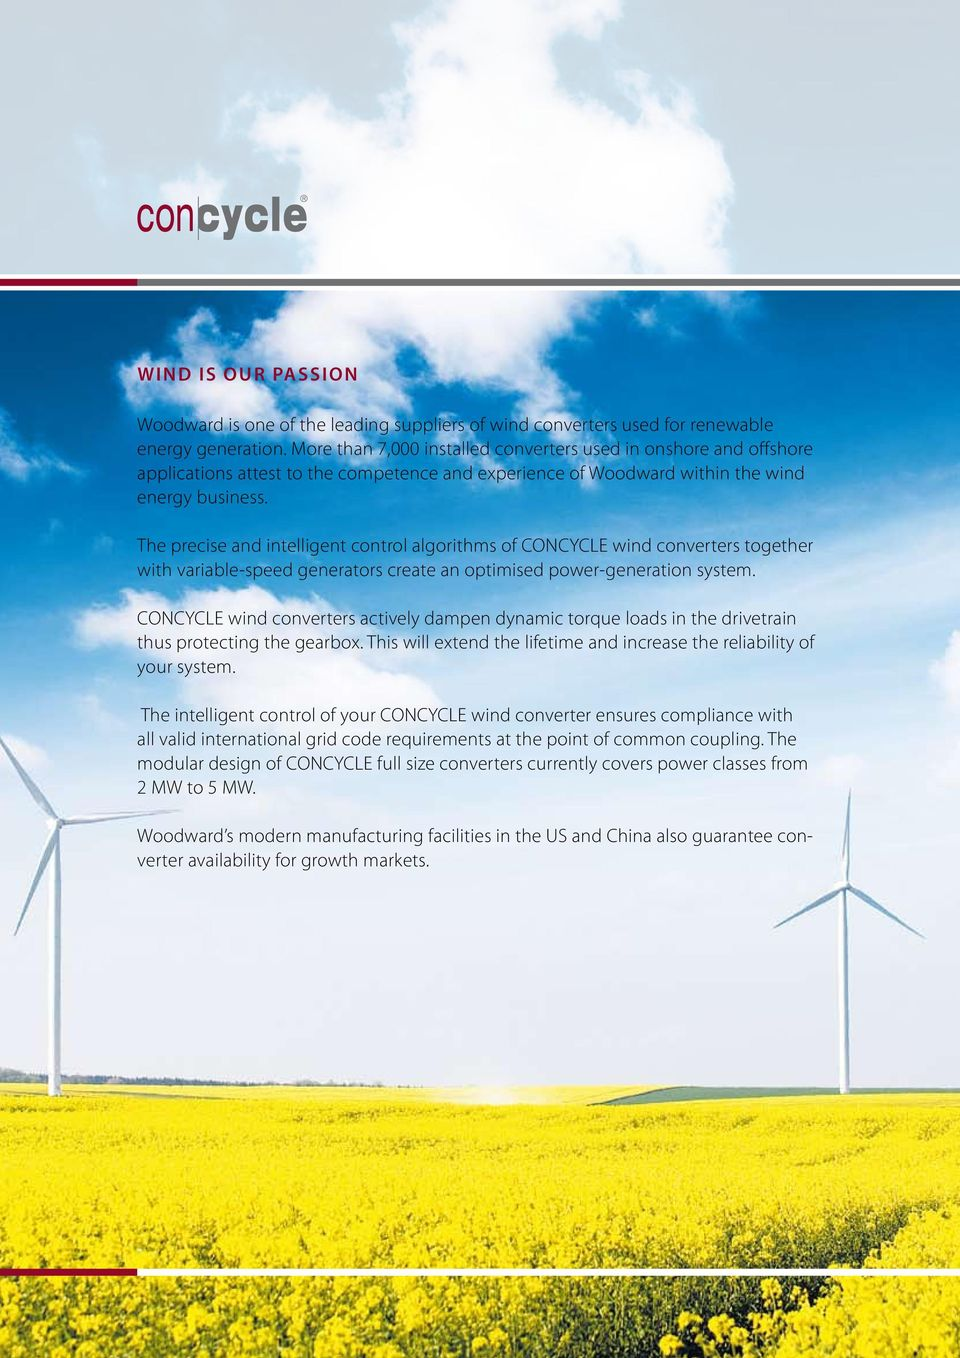 The precise and intelligent control algorithms of CONCYCLE wind converters together with variable-speed generators create an optimised power-generation system.